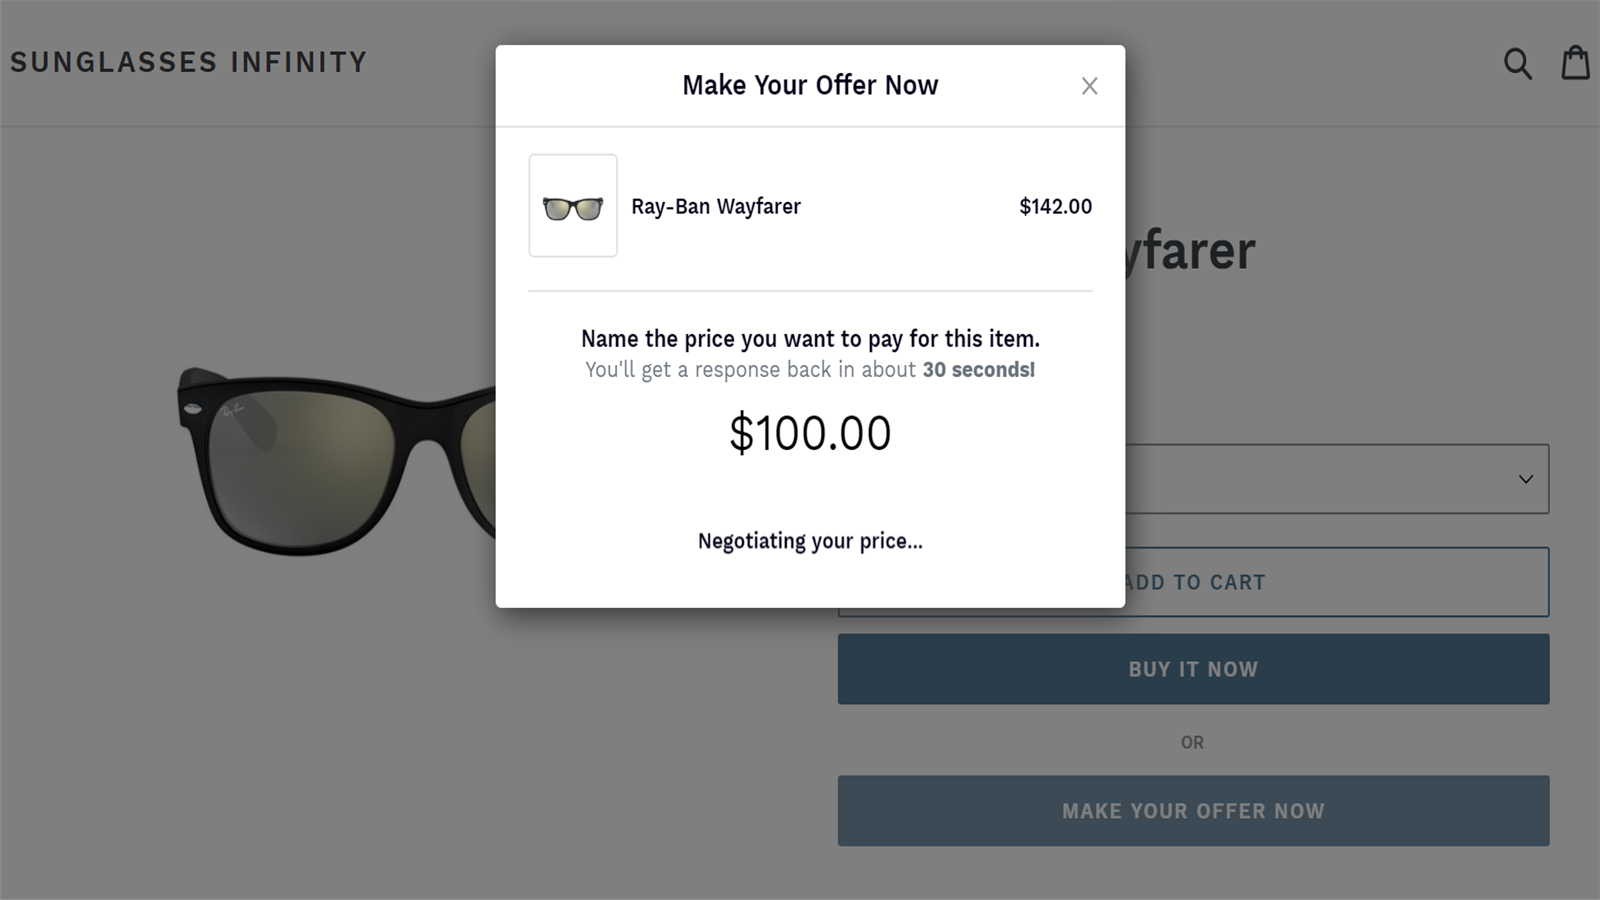 Shoppers see their offer is being negotiated in real time